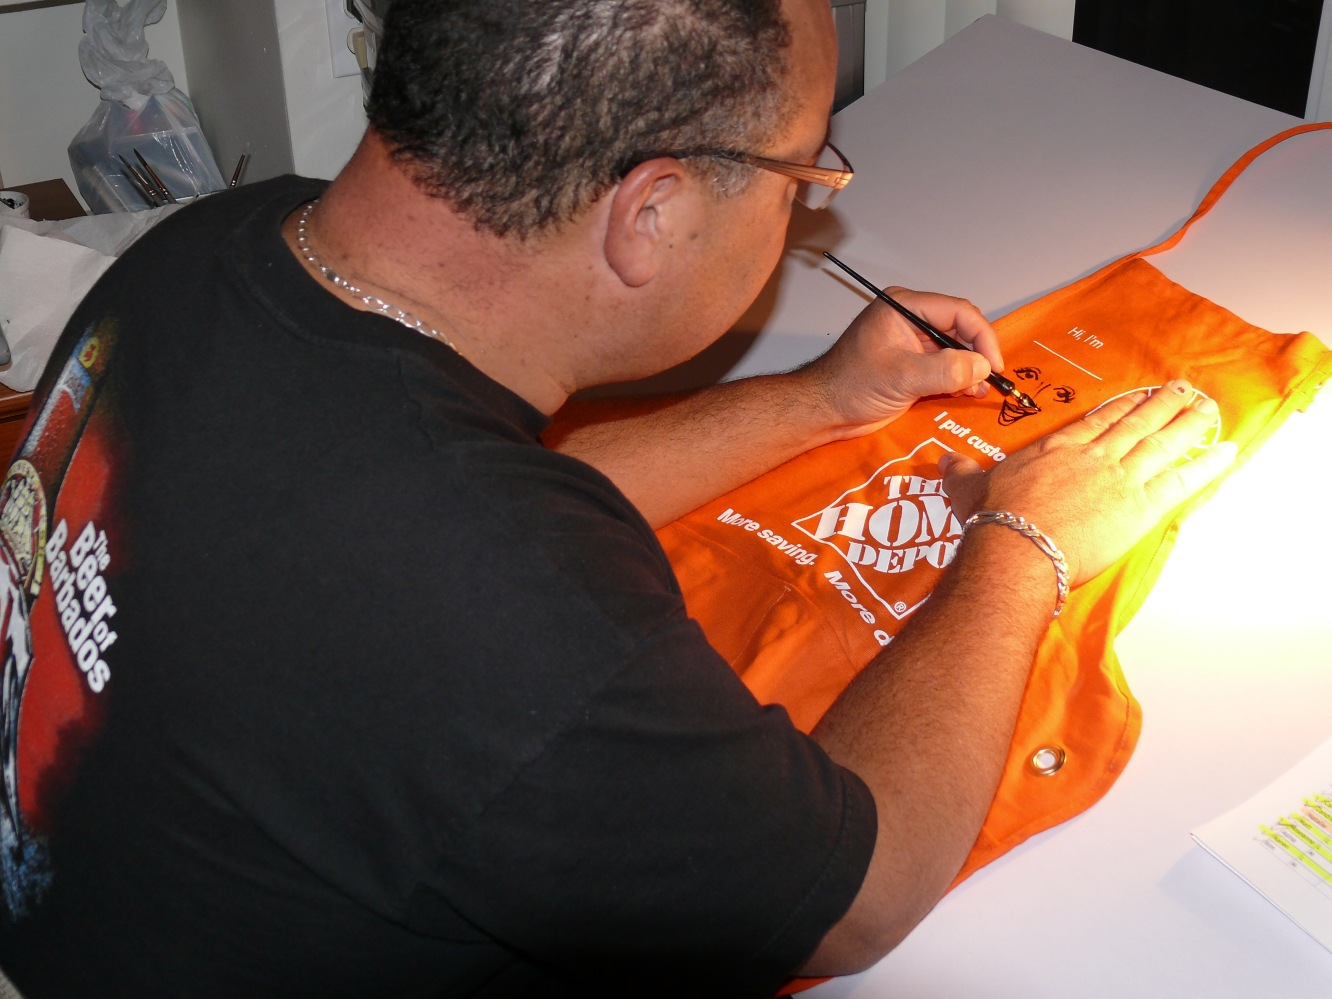 Bruce working late caricaturing the aprons